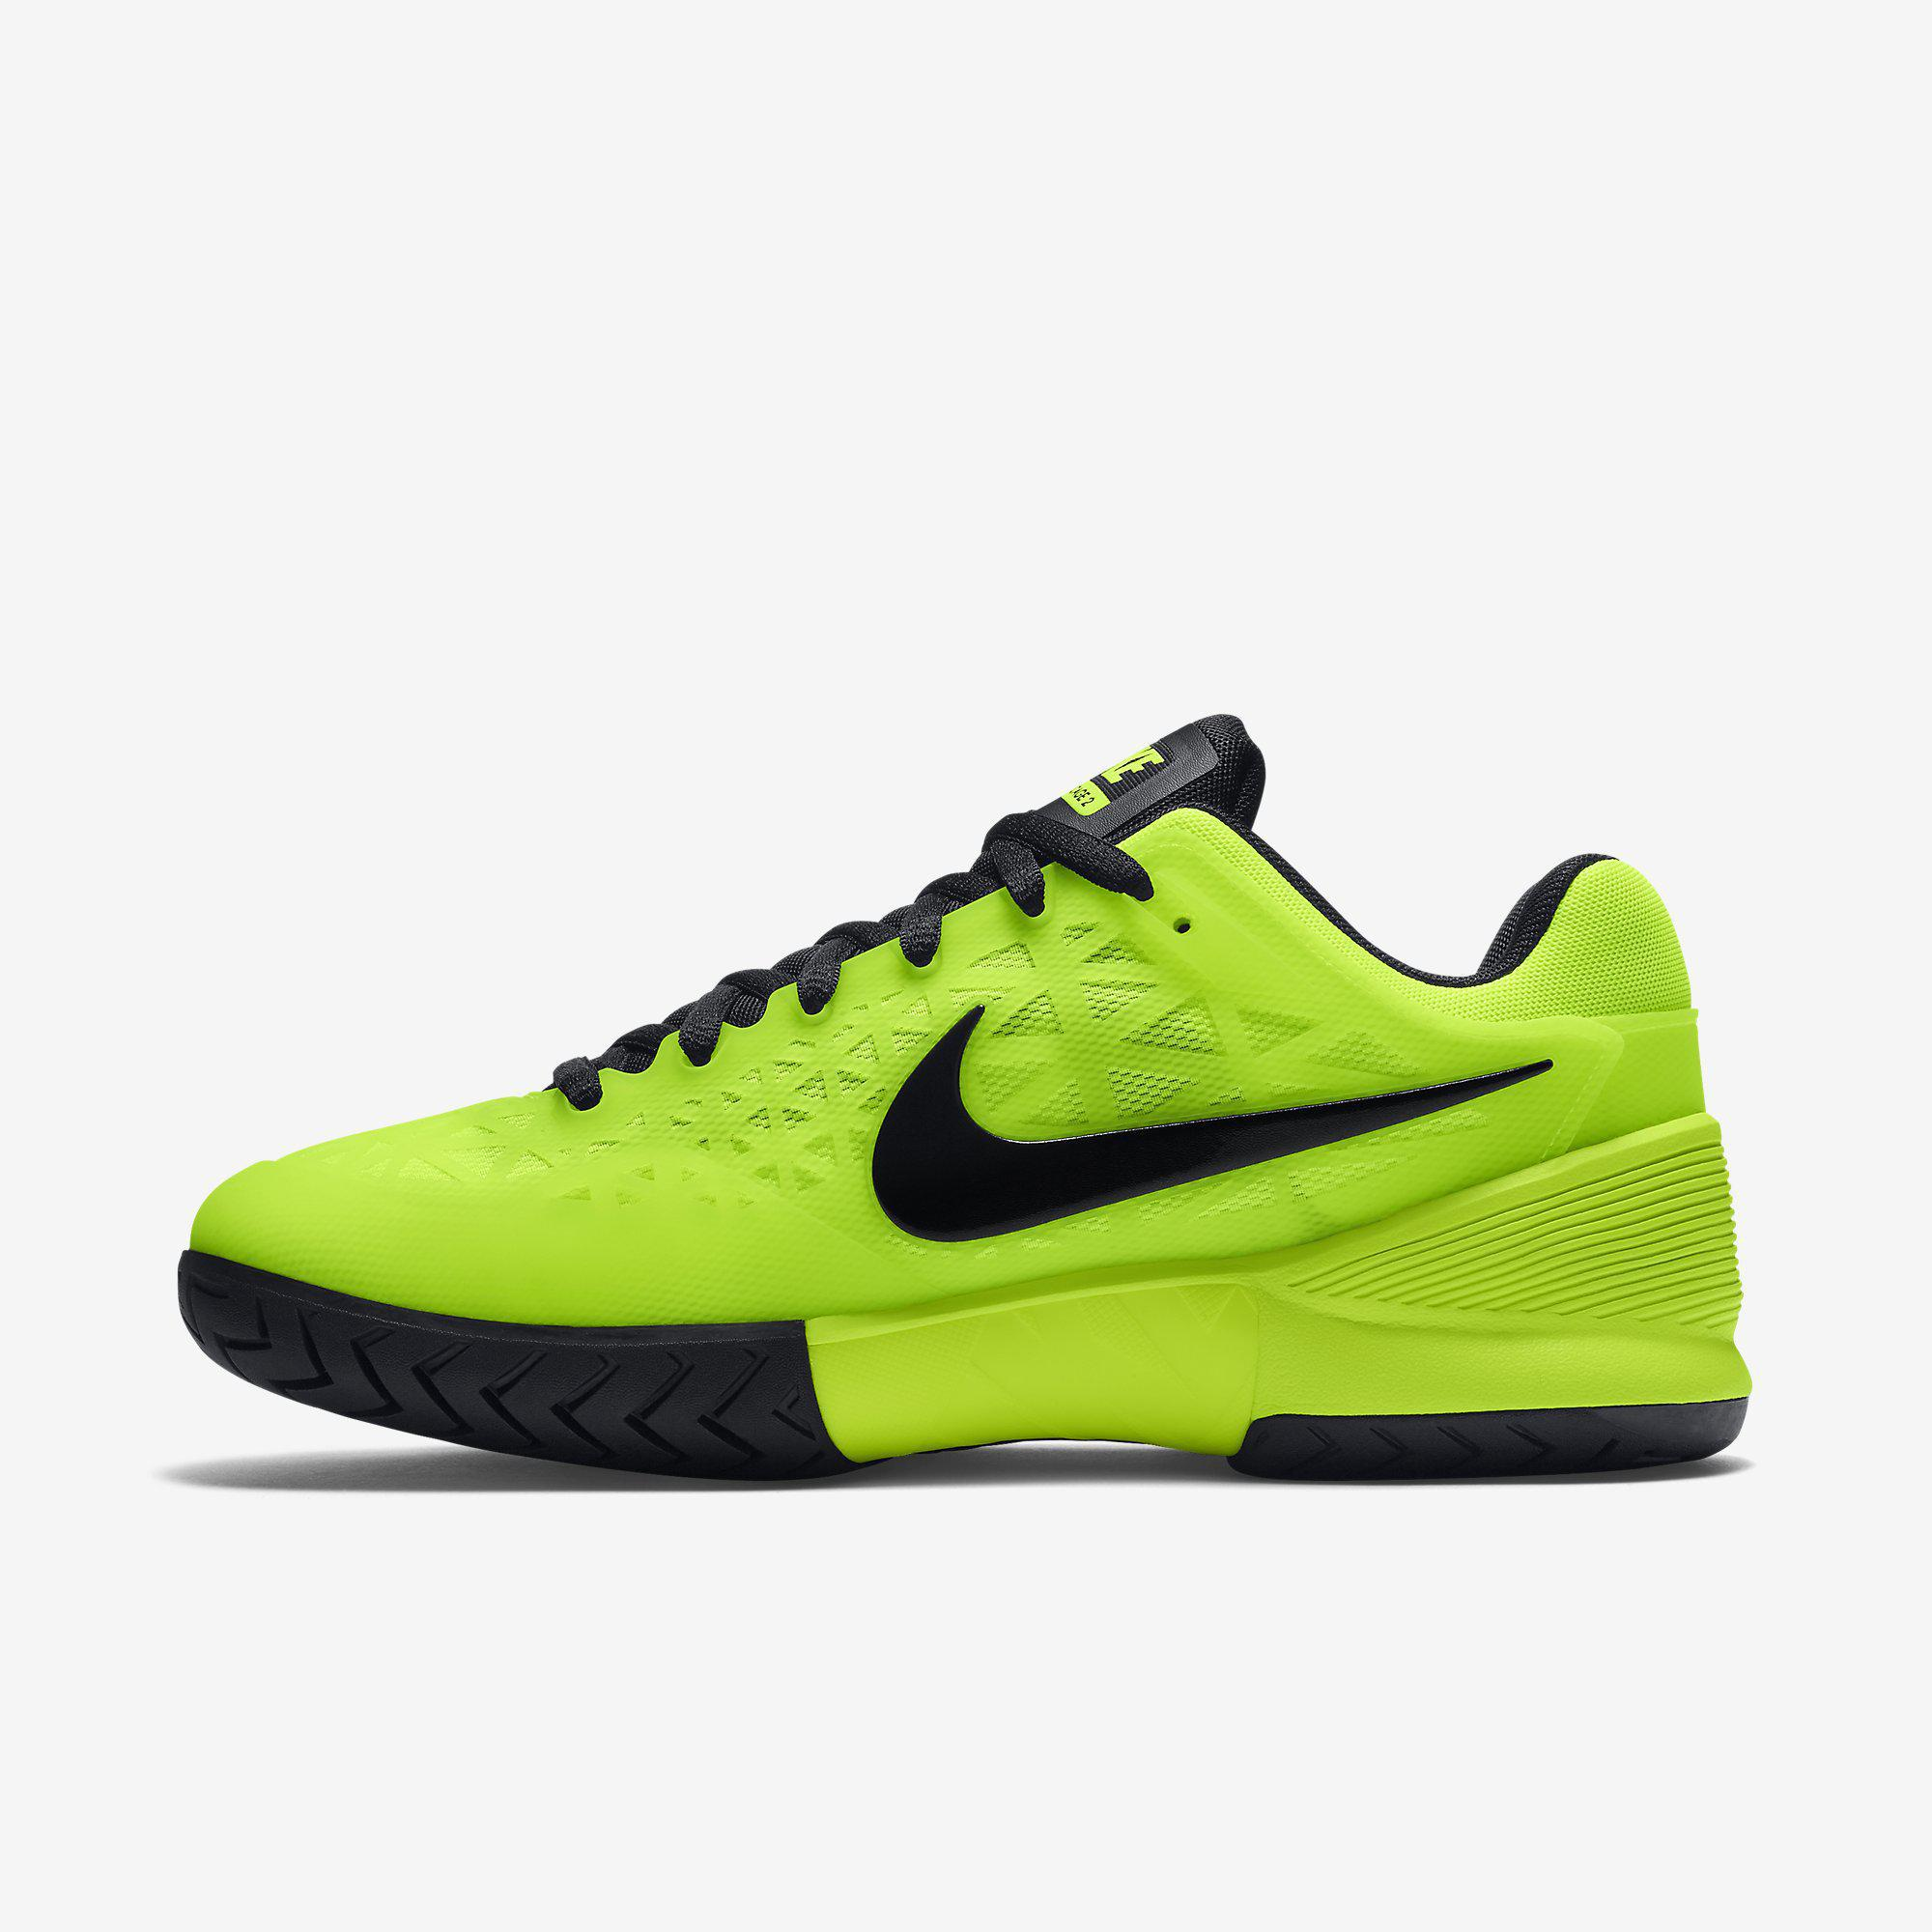 Nike Mens Zoom Cage 2 Tennis Shoes - Volt/Black